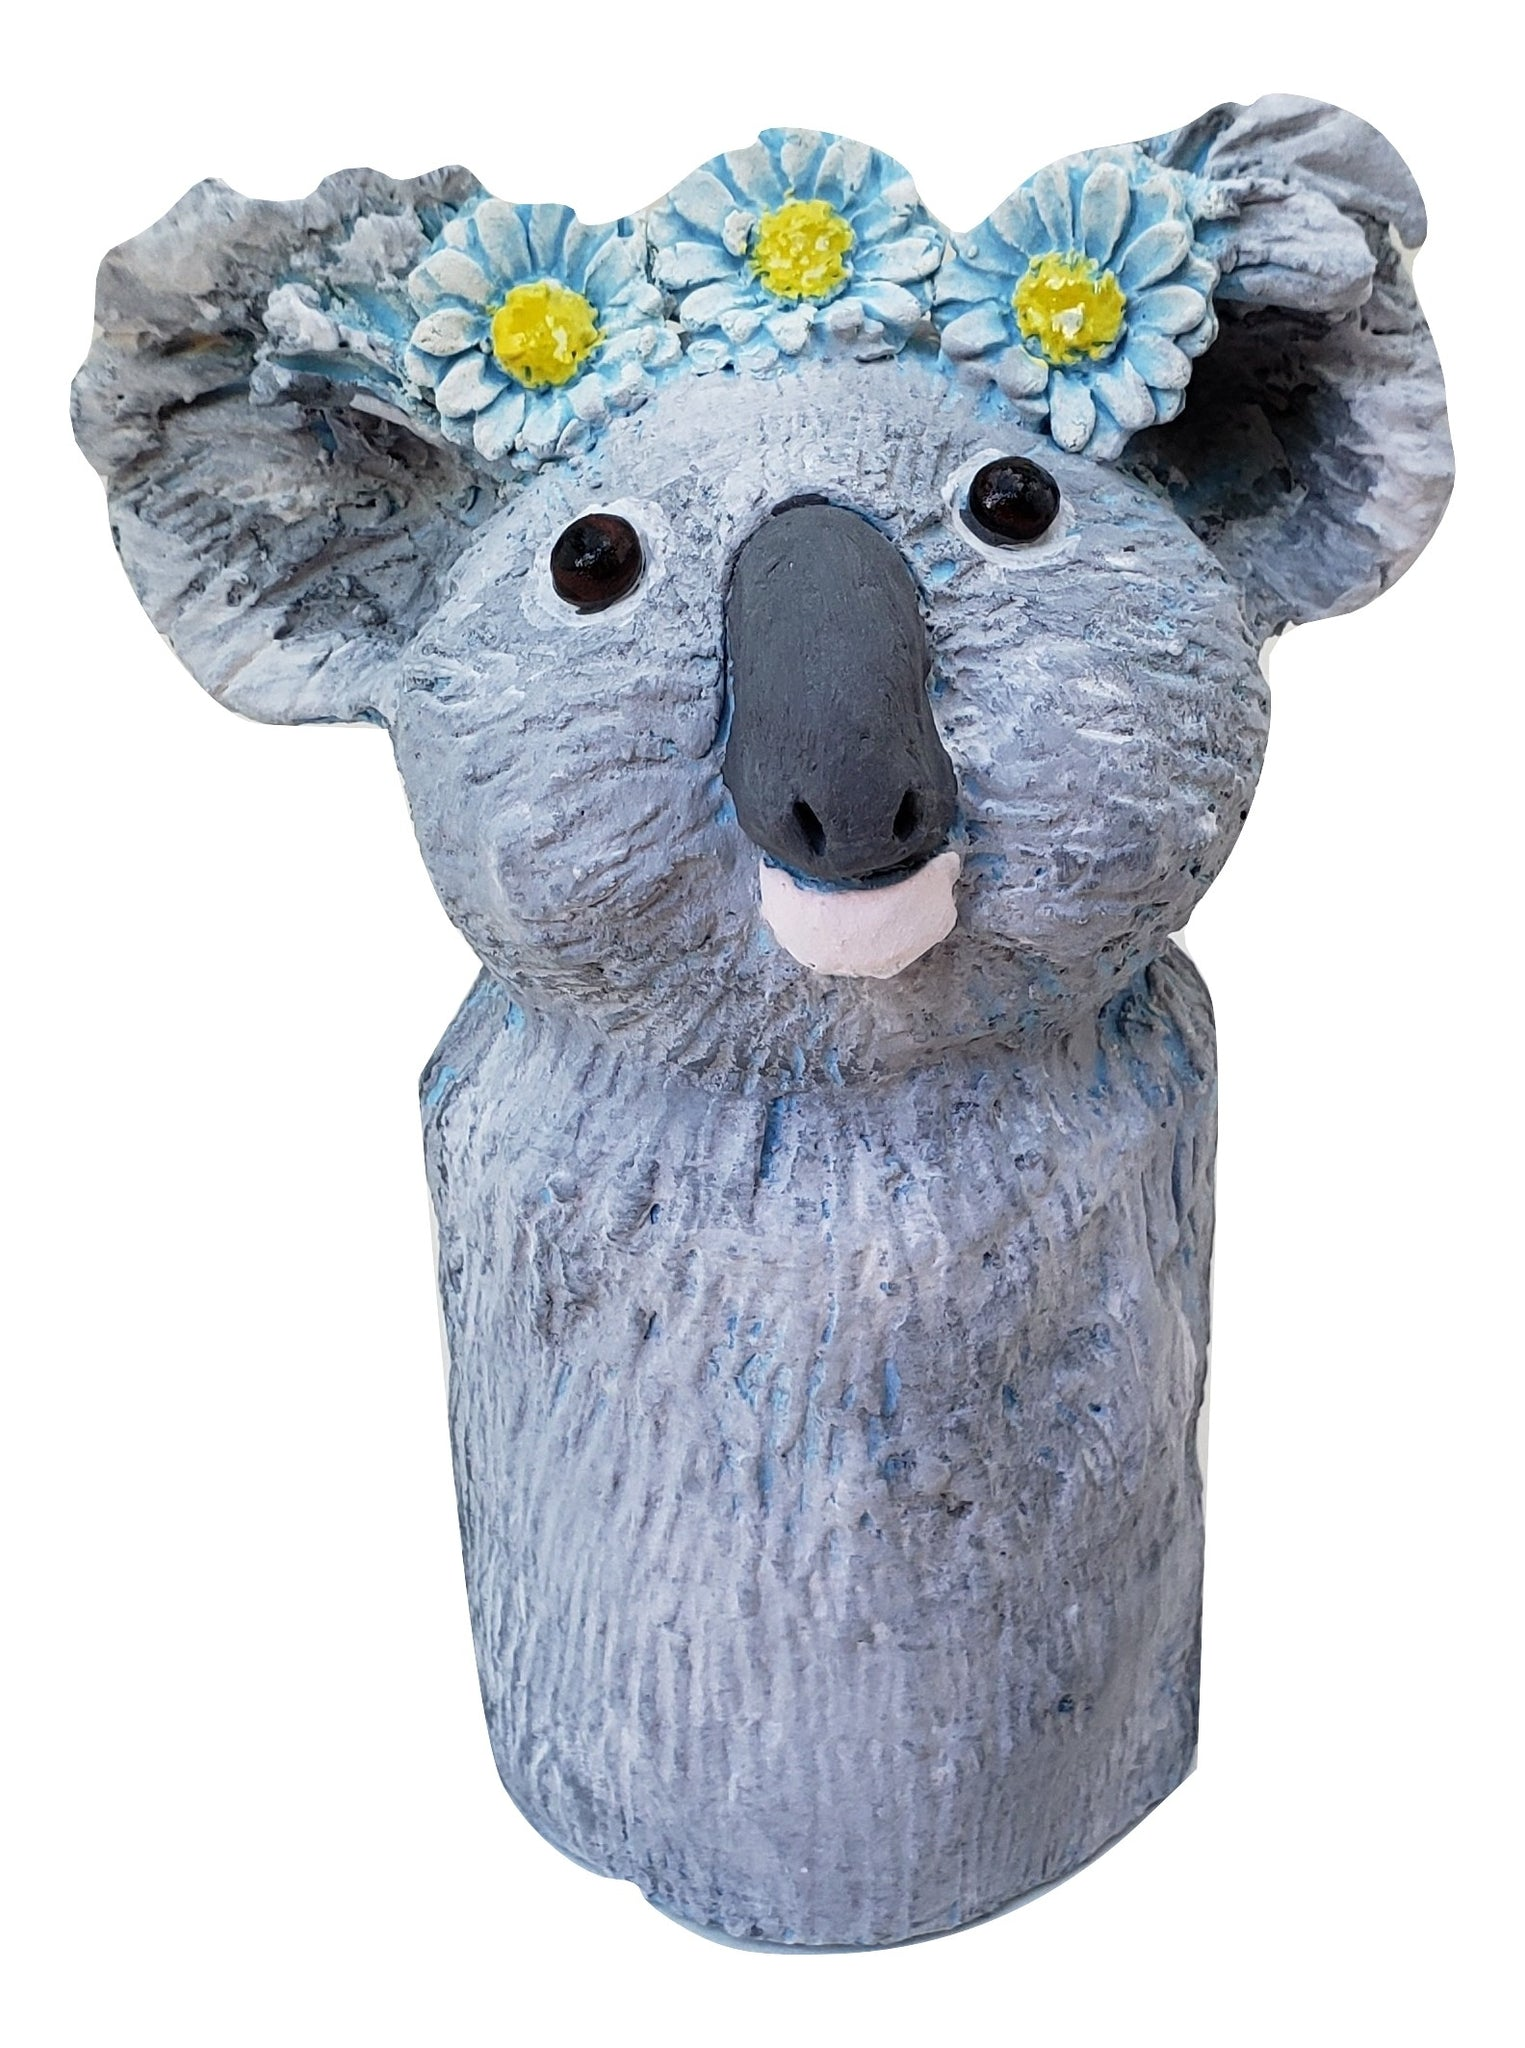 Koala Bear with Daisy Chain - Artworks by Karen Fincannon